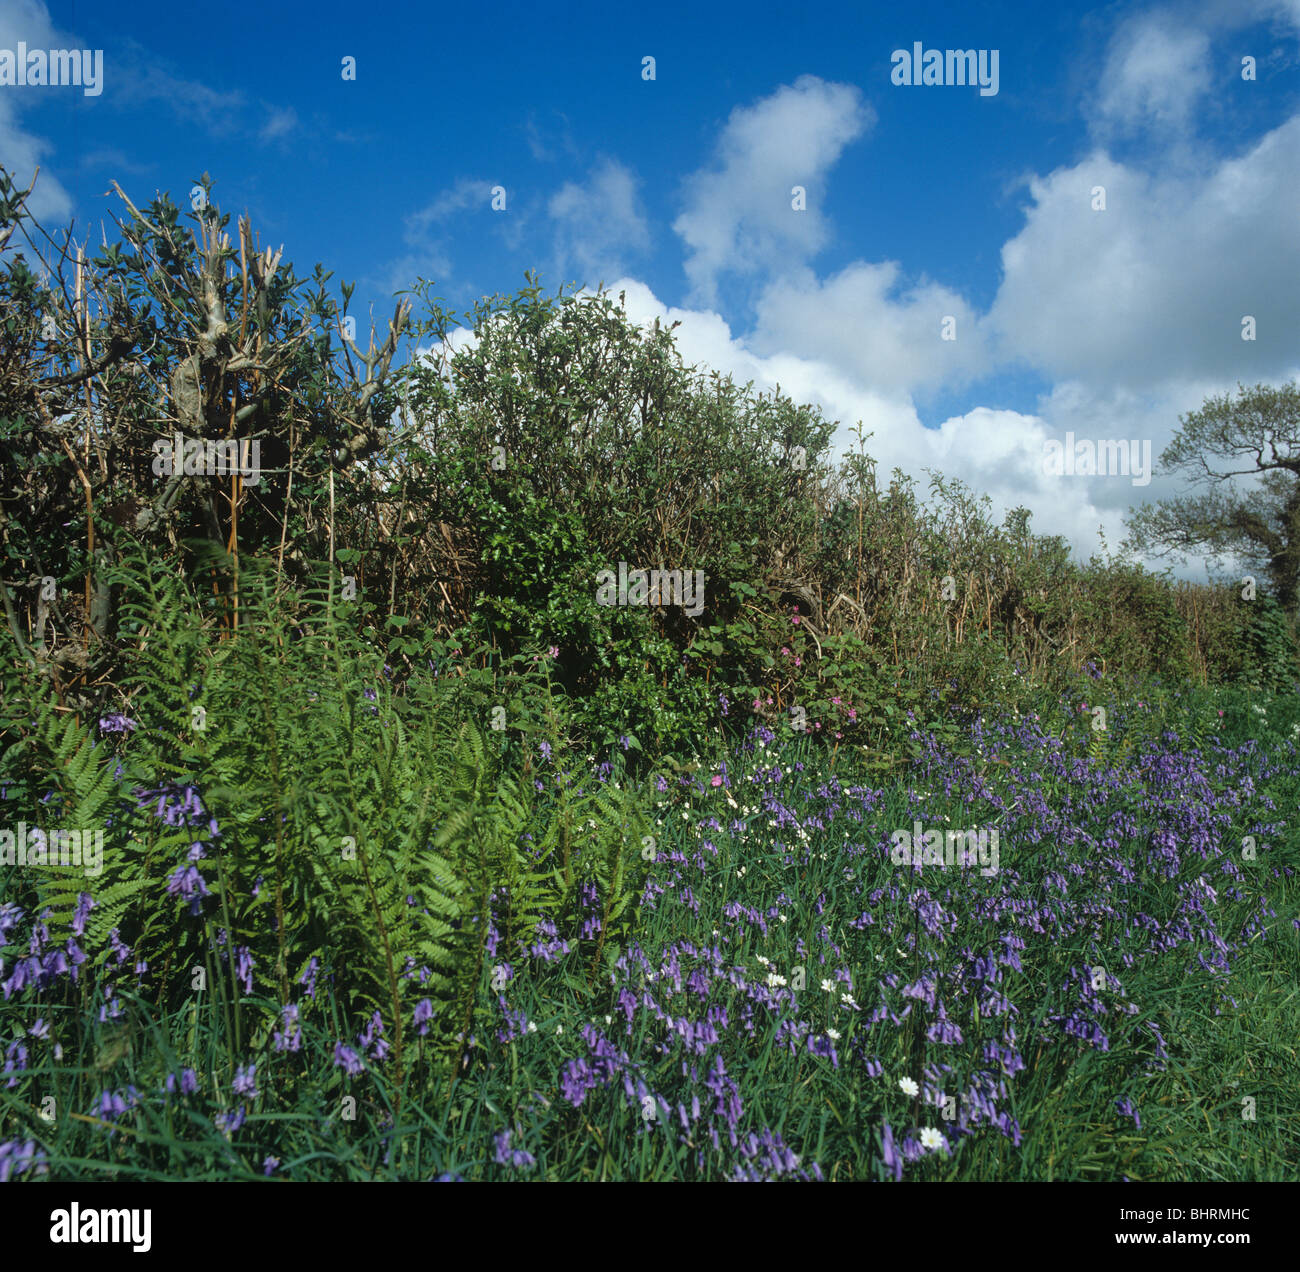 Devon bank and hedgerow with flowering bluebells in spring - Stock Image